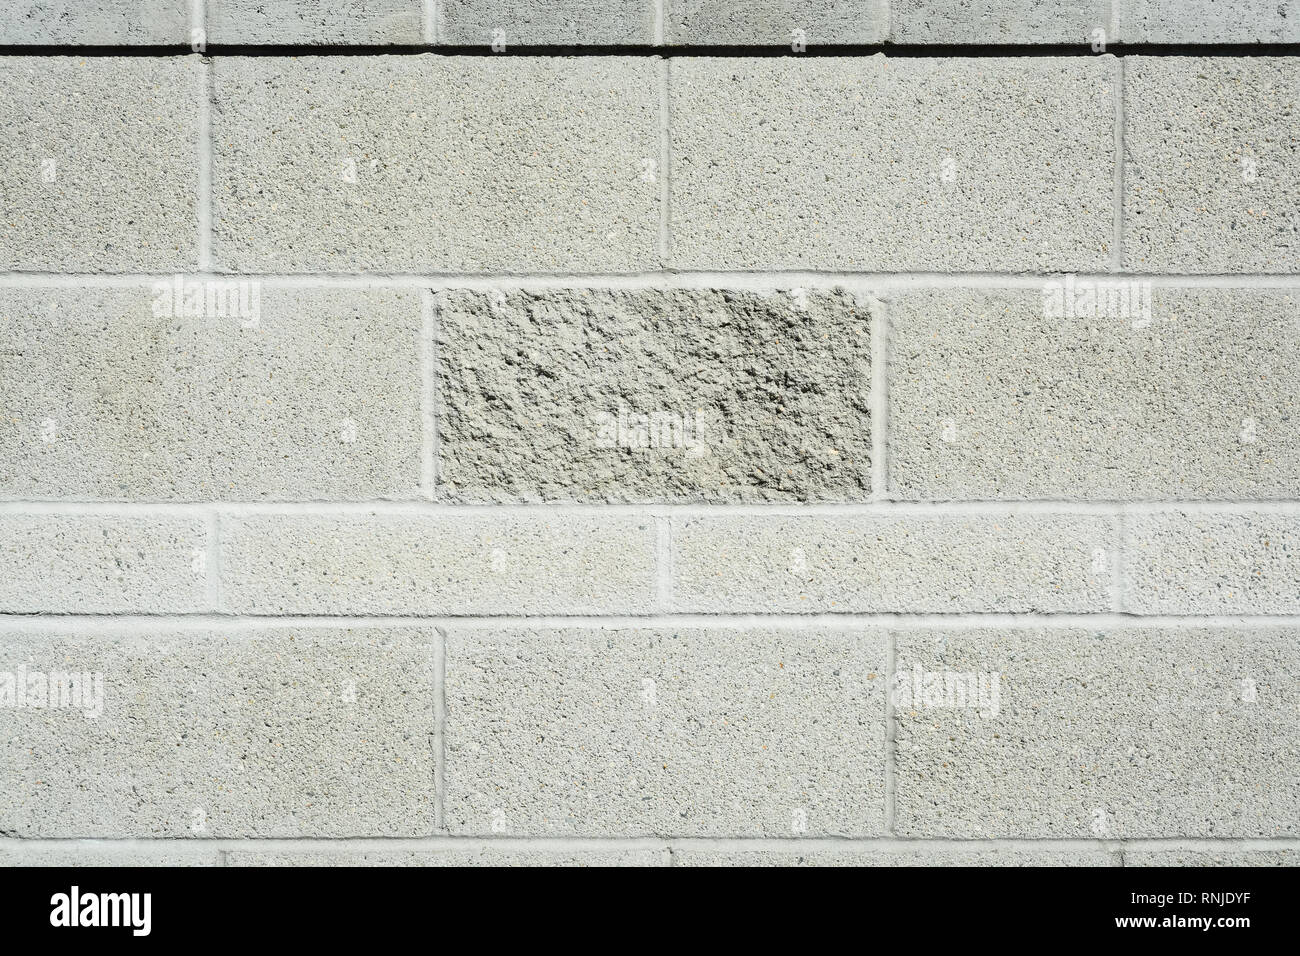 Stone wall concrete texture. Cement block wall background Stock Photo